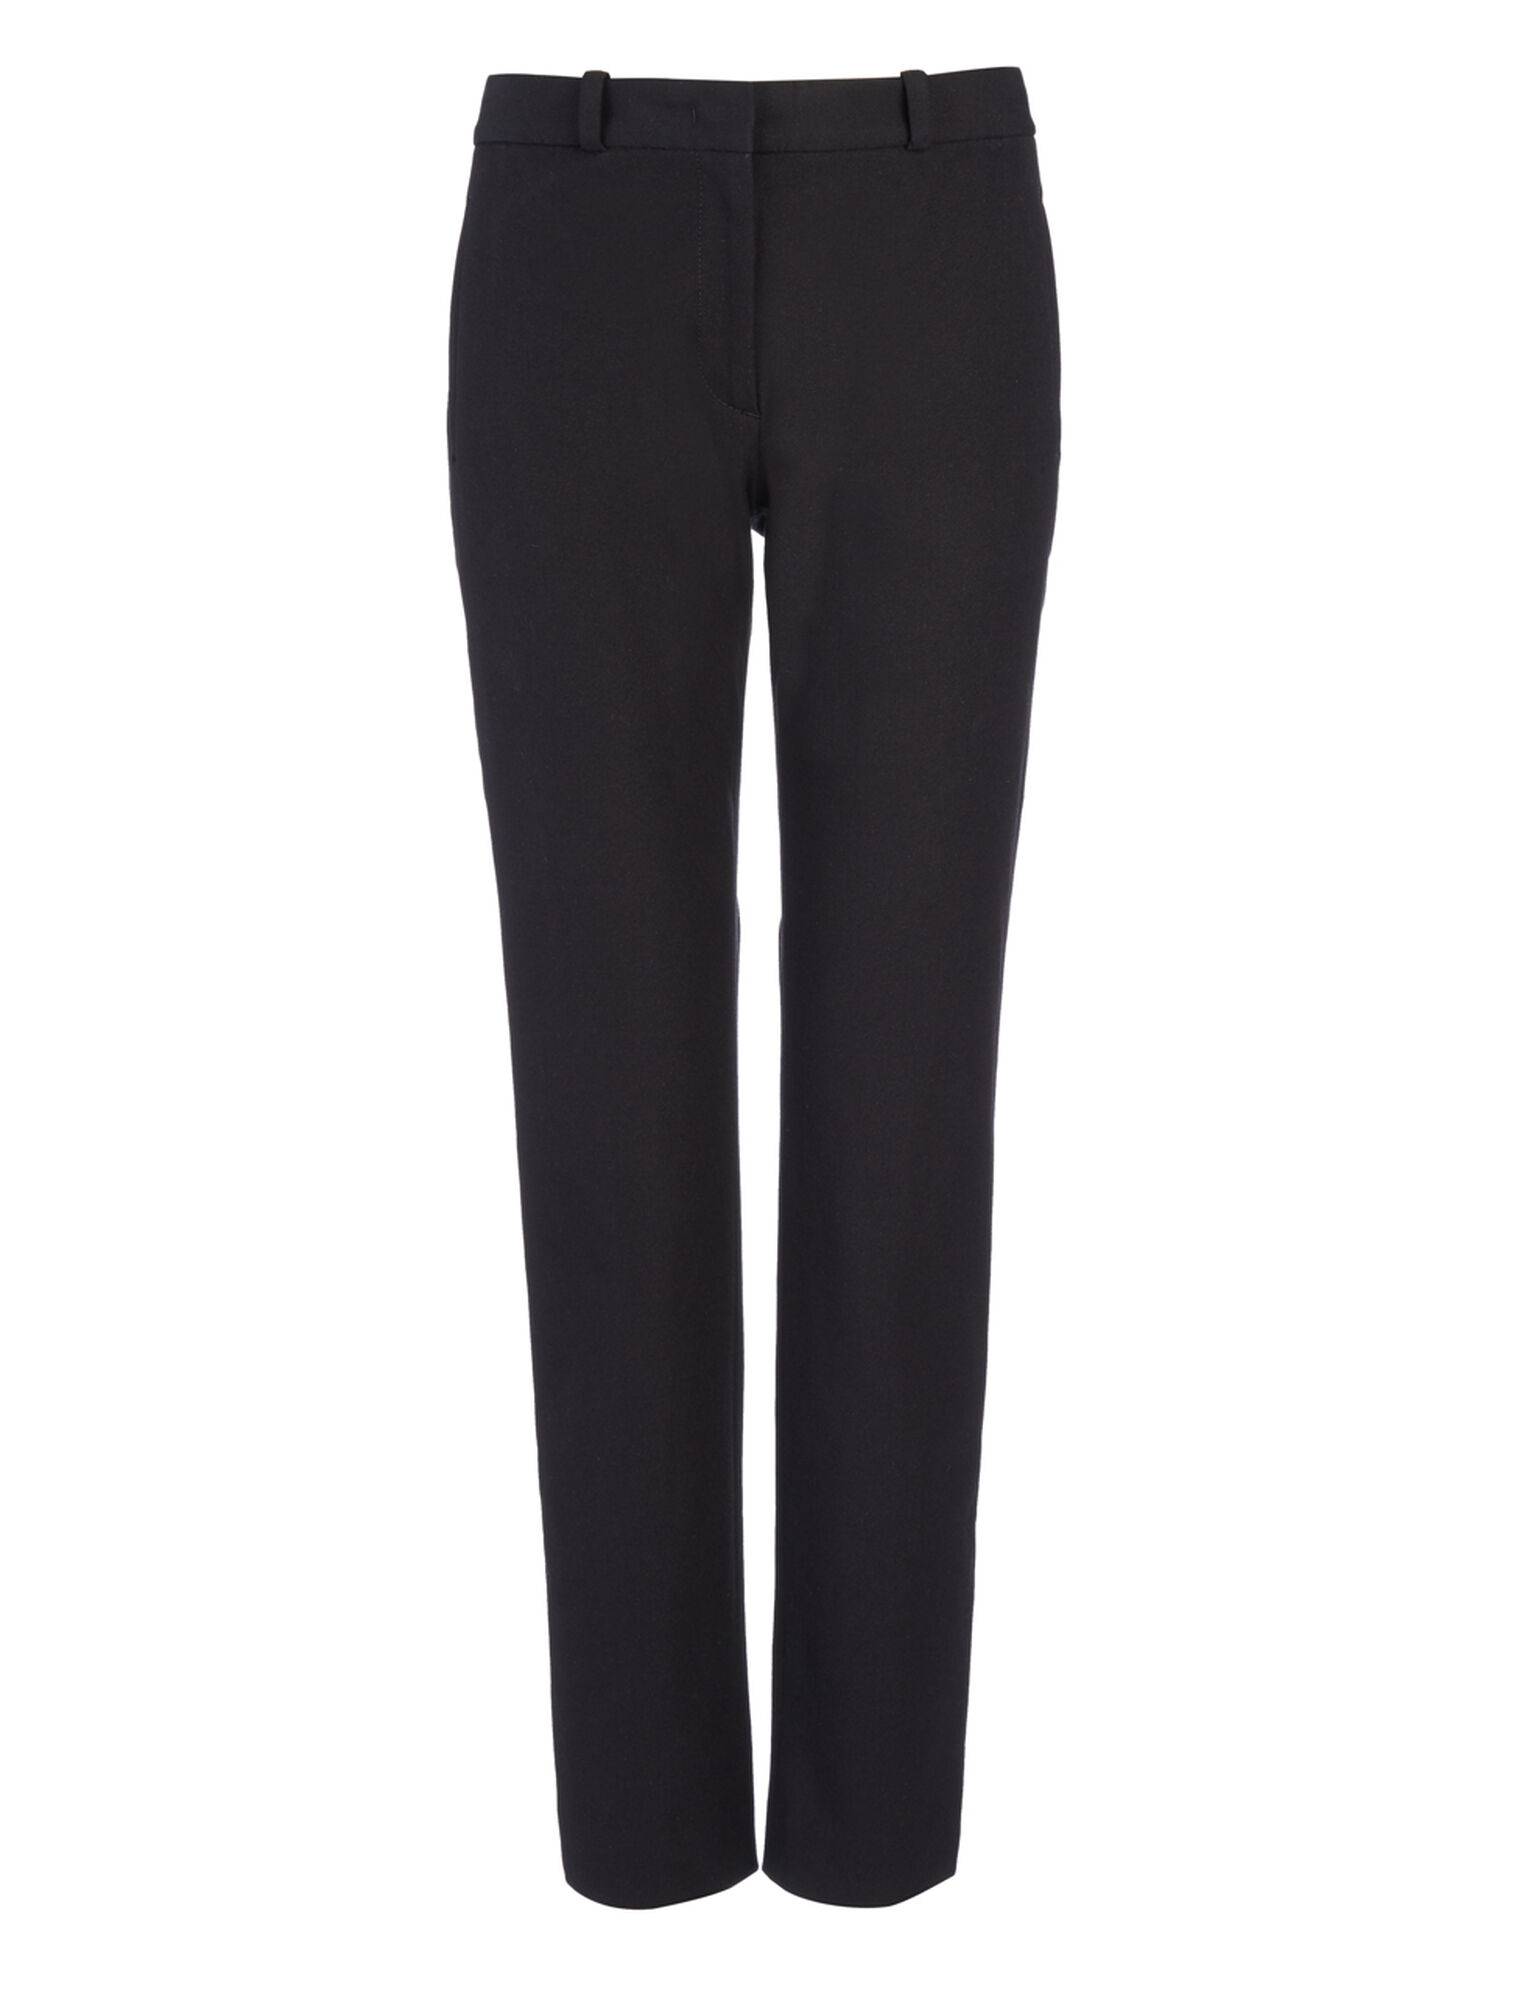 Gabardine Stretch New Eliston Trouser, in BLACK, large | on Joseph